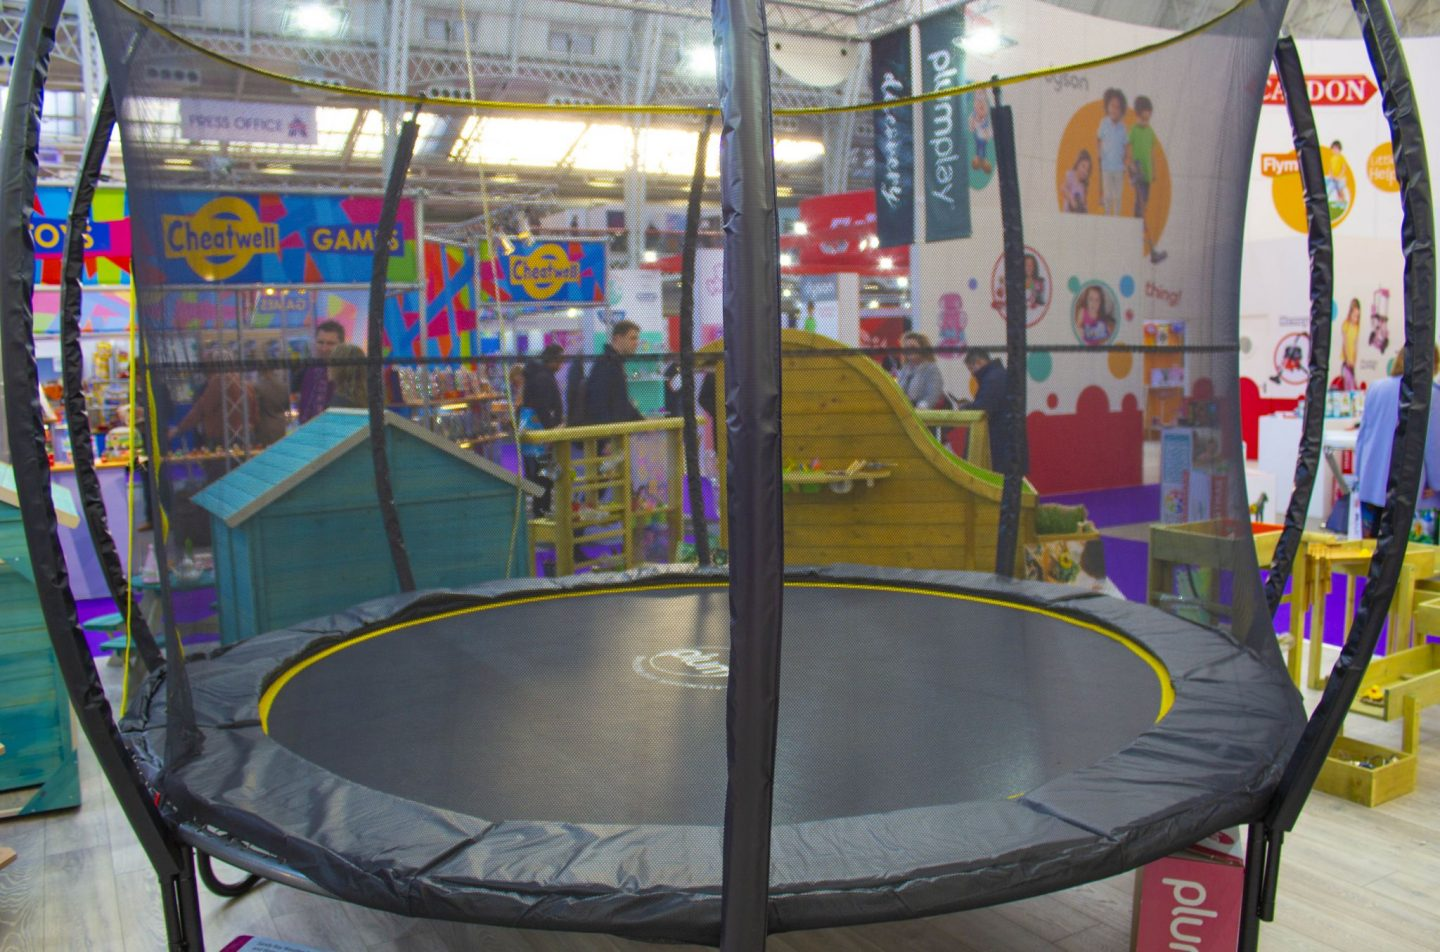 Plum, Plum trampoline, outdoor toys, The Toy Fair, Toy Fair 2019, The Toy Fair 2019, Microscooters, dadbloguk, dad blog uk, dadbloguk.com, school run dad, sahd, wahd toys, gifts